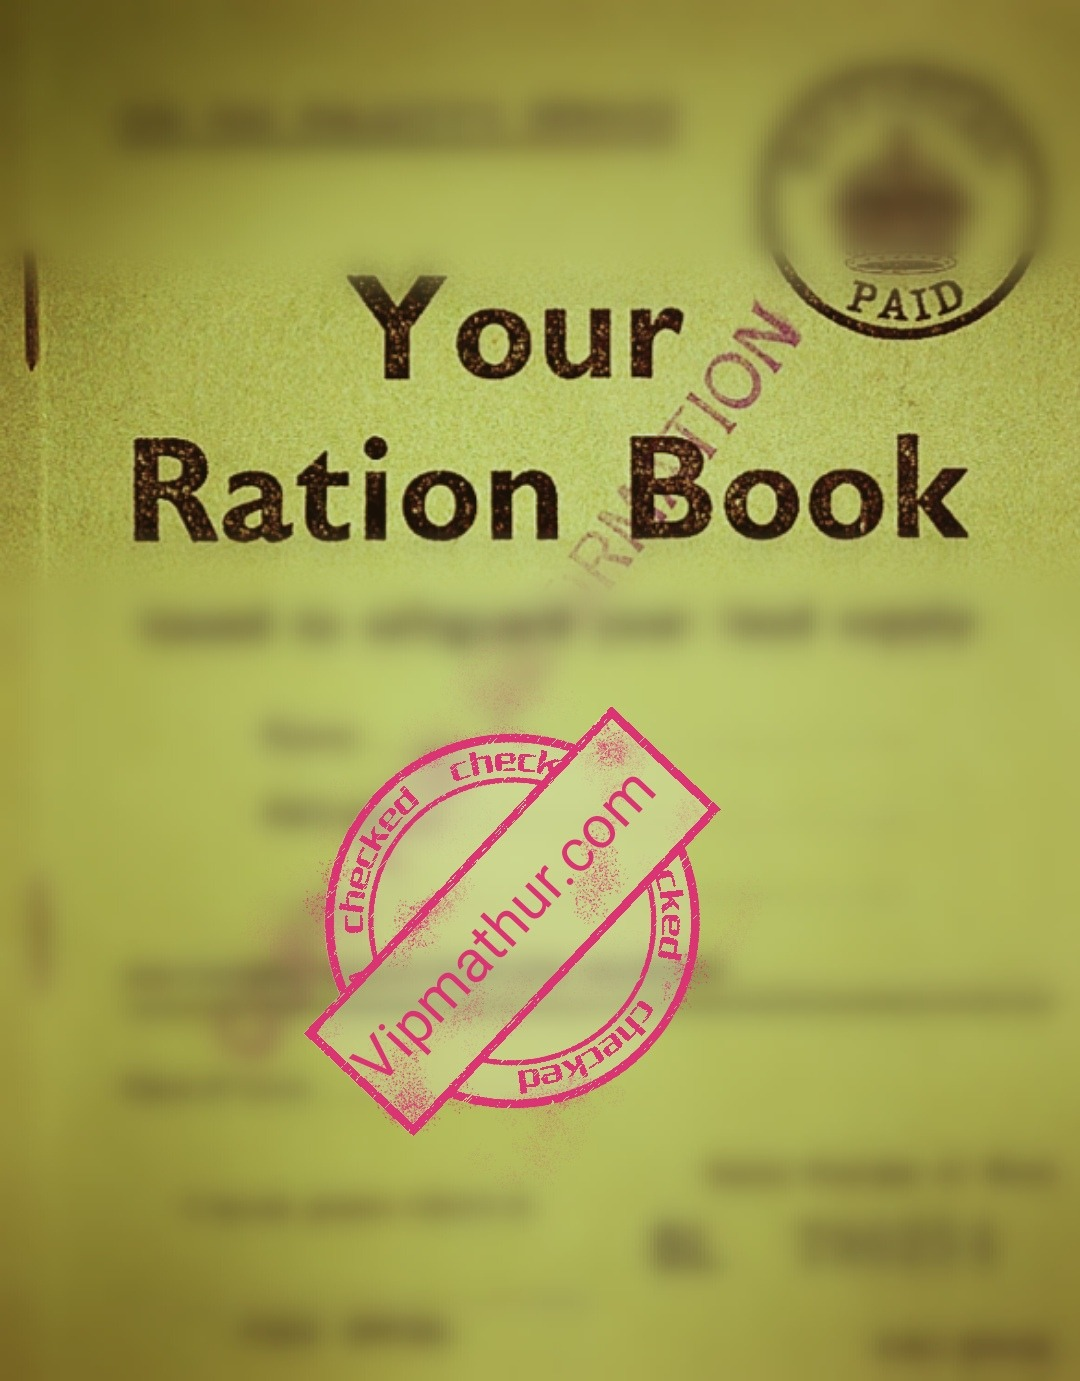 New Ration Card The Process Will Be Online